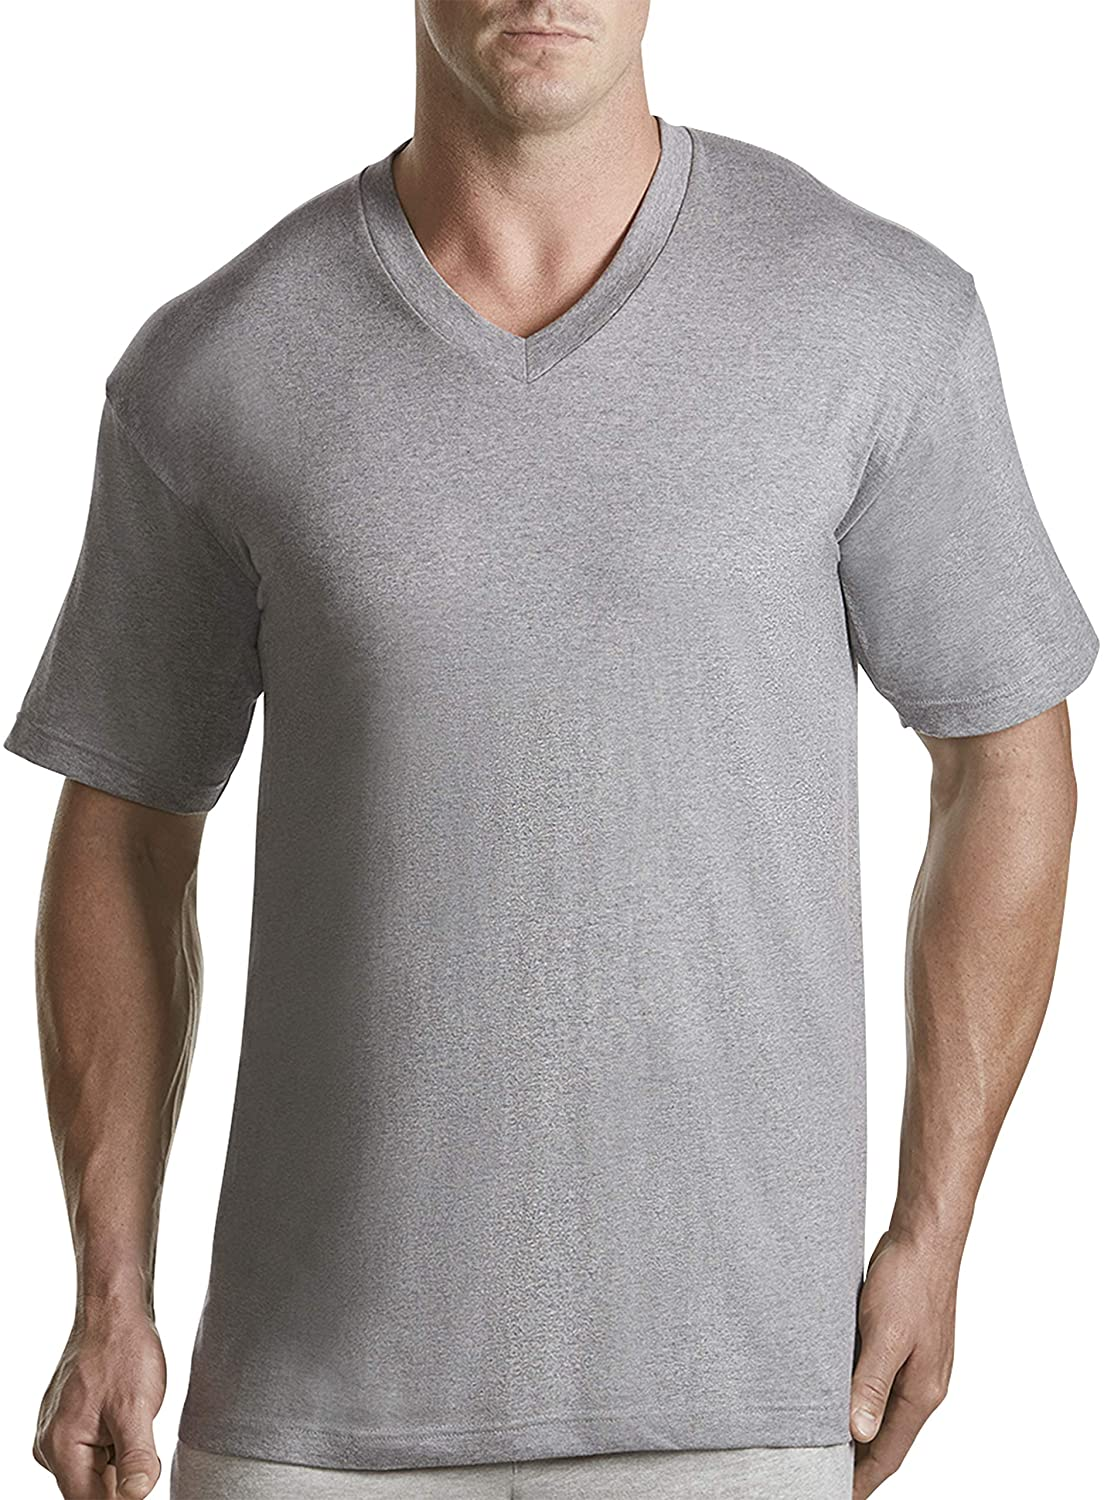 Harbor Bay by DXL Big and Tall 3-Pack V-Neck T-Shirt